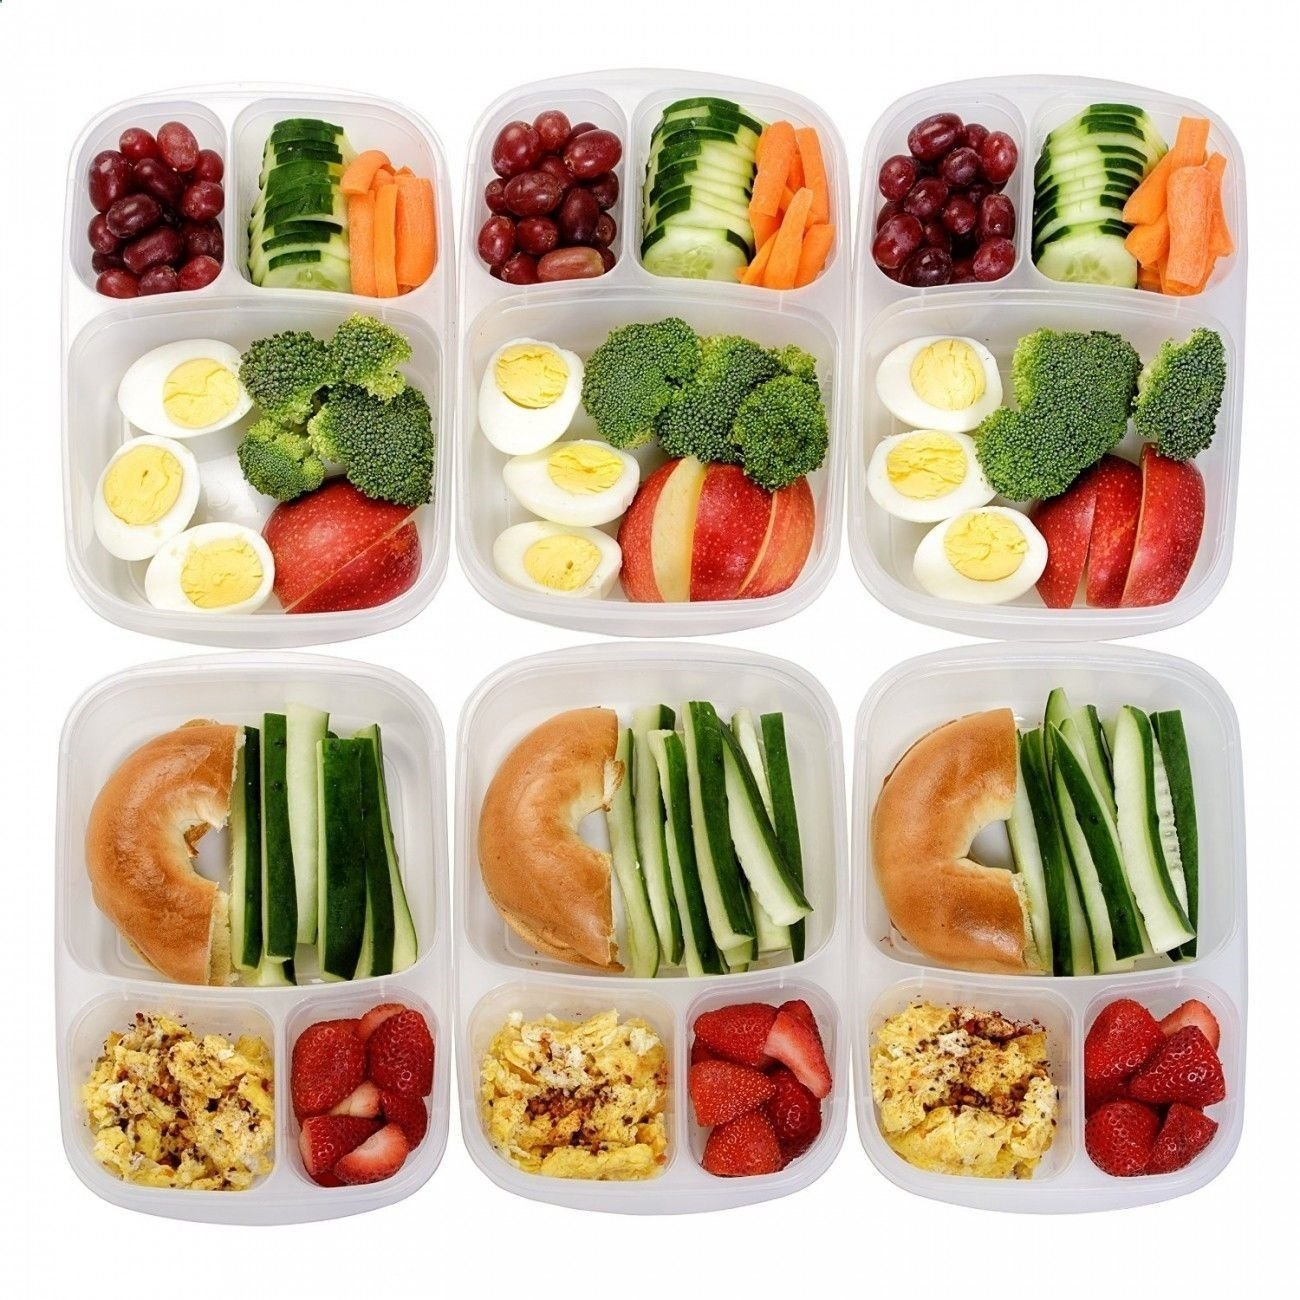 10 Awesome Healthy Snack Ideas For Weight Loss weight loss e factor diet meals and healthy snacks perfect for 2020